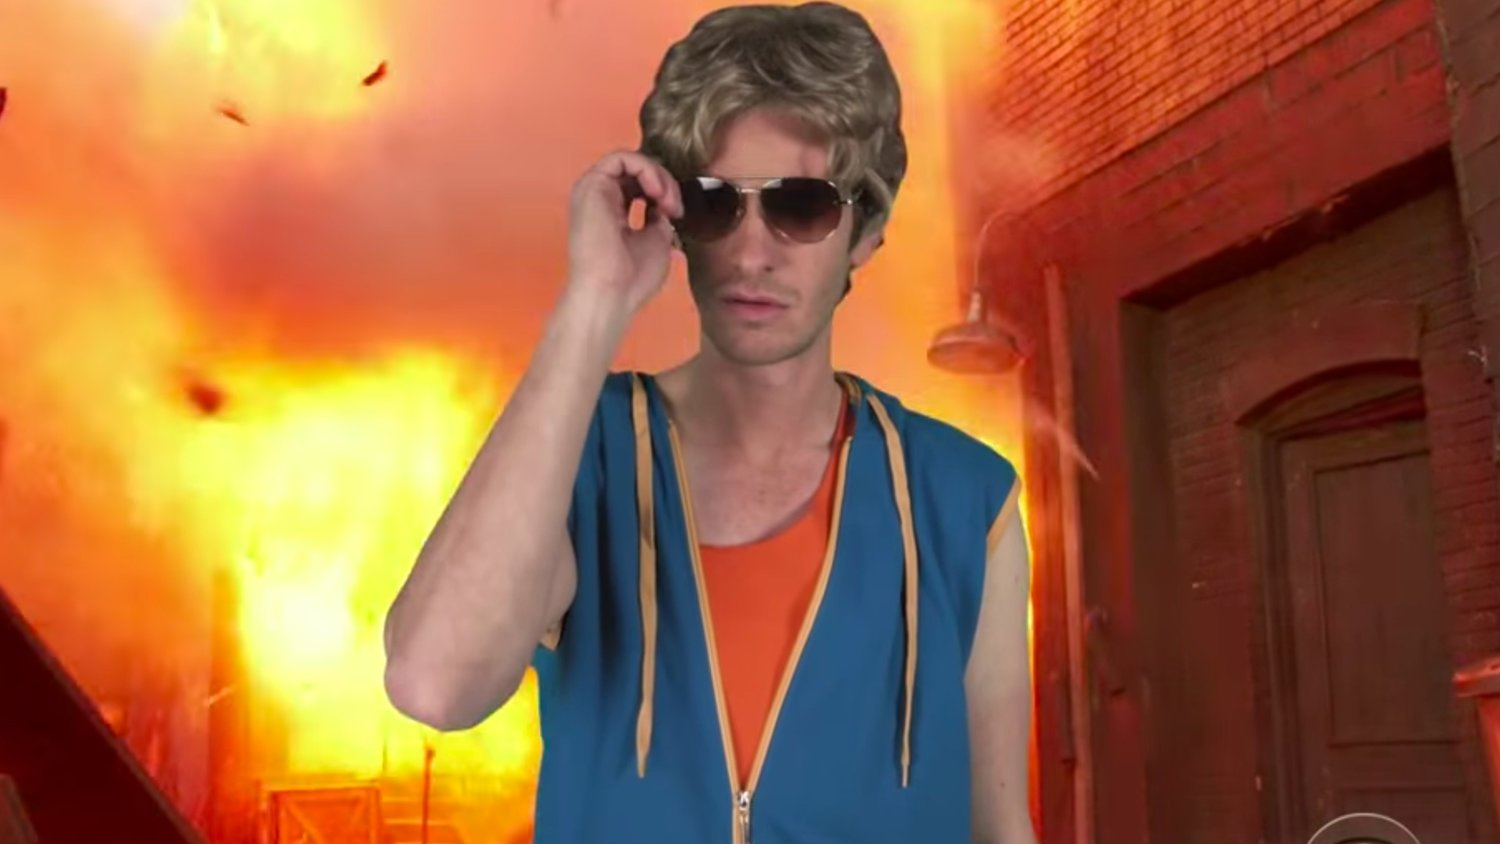 Andrew Garfield Stars in a Loony Action Film Trailer Written by Kids Called TEENAGE WAR